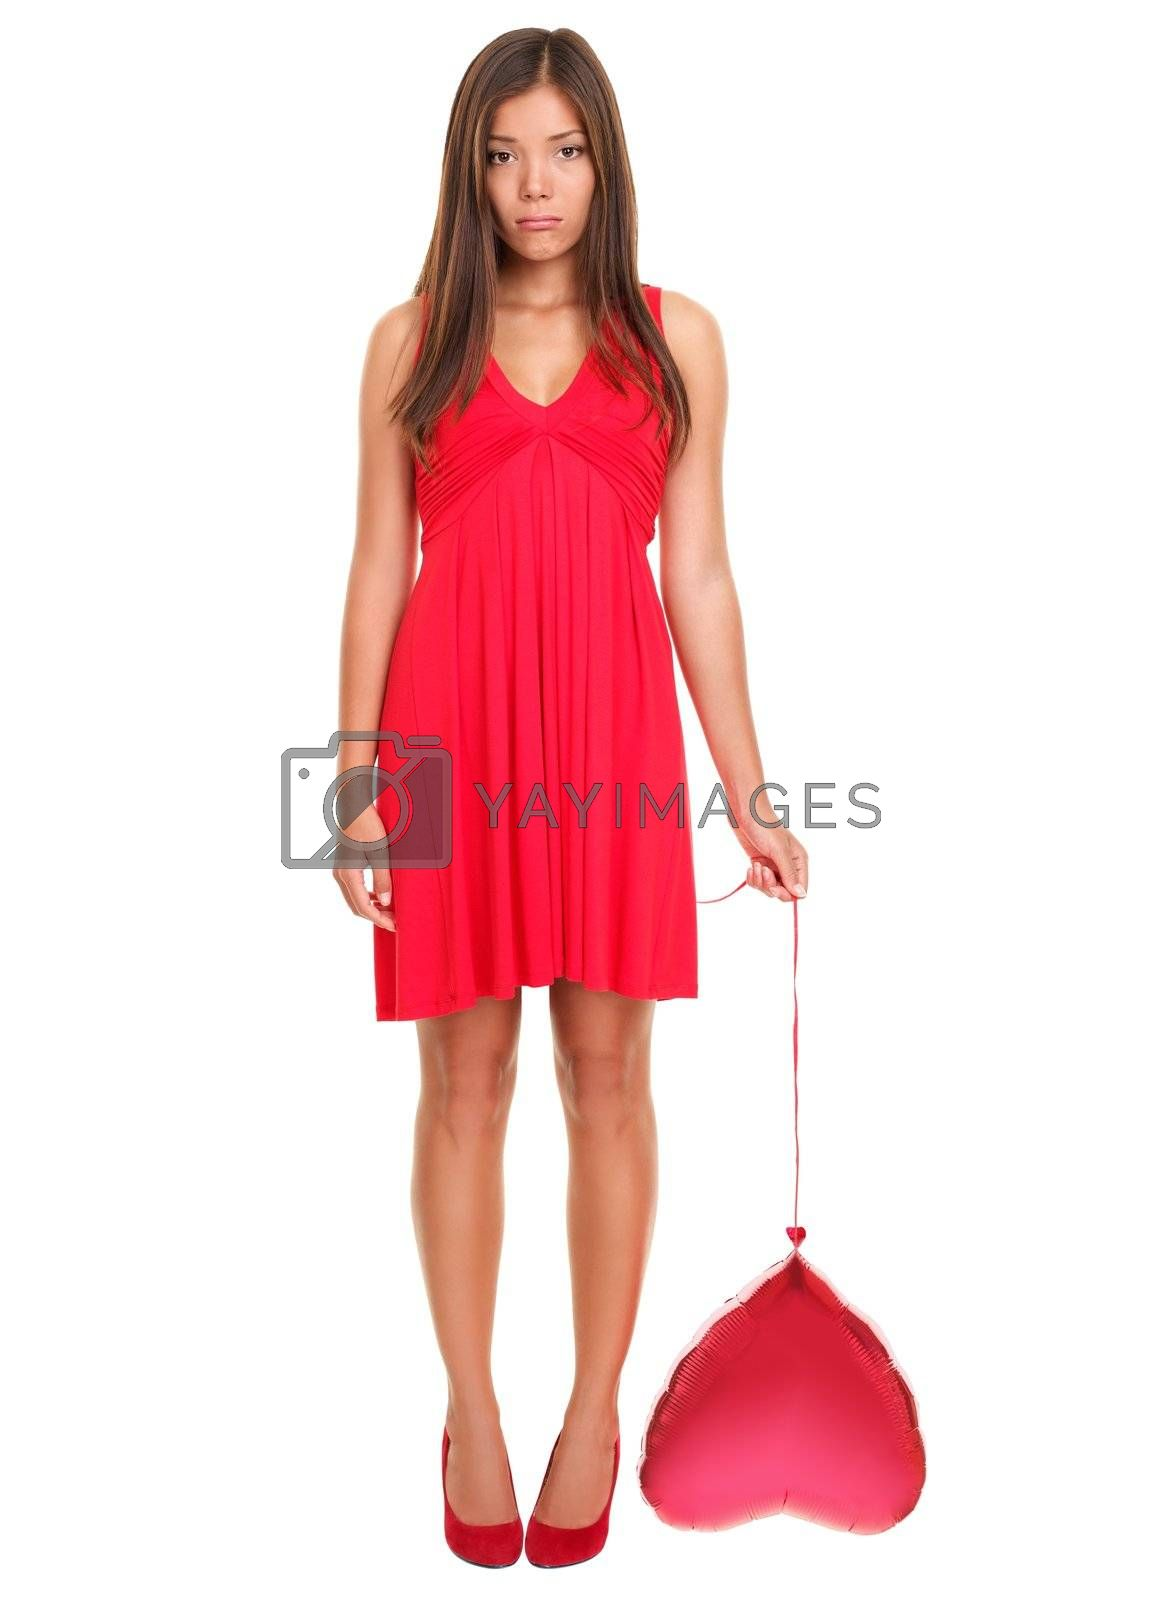 Sad woman in love ? funny. Valentines day woman unhappy holding red heart balloon  Beautiful young woman in red dress. Asian / Caucasian female model isolated on white background in full length. Broken heart love concept.